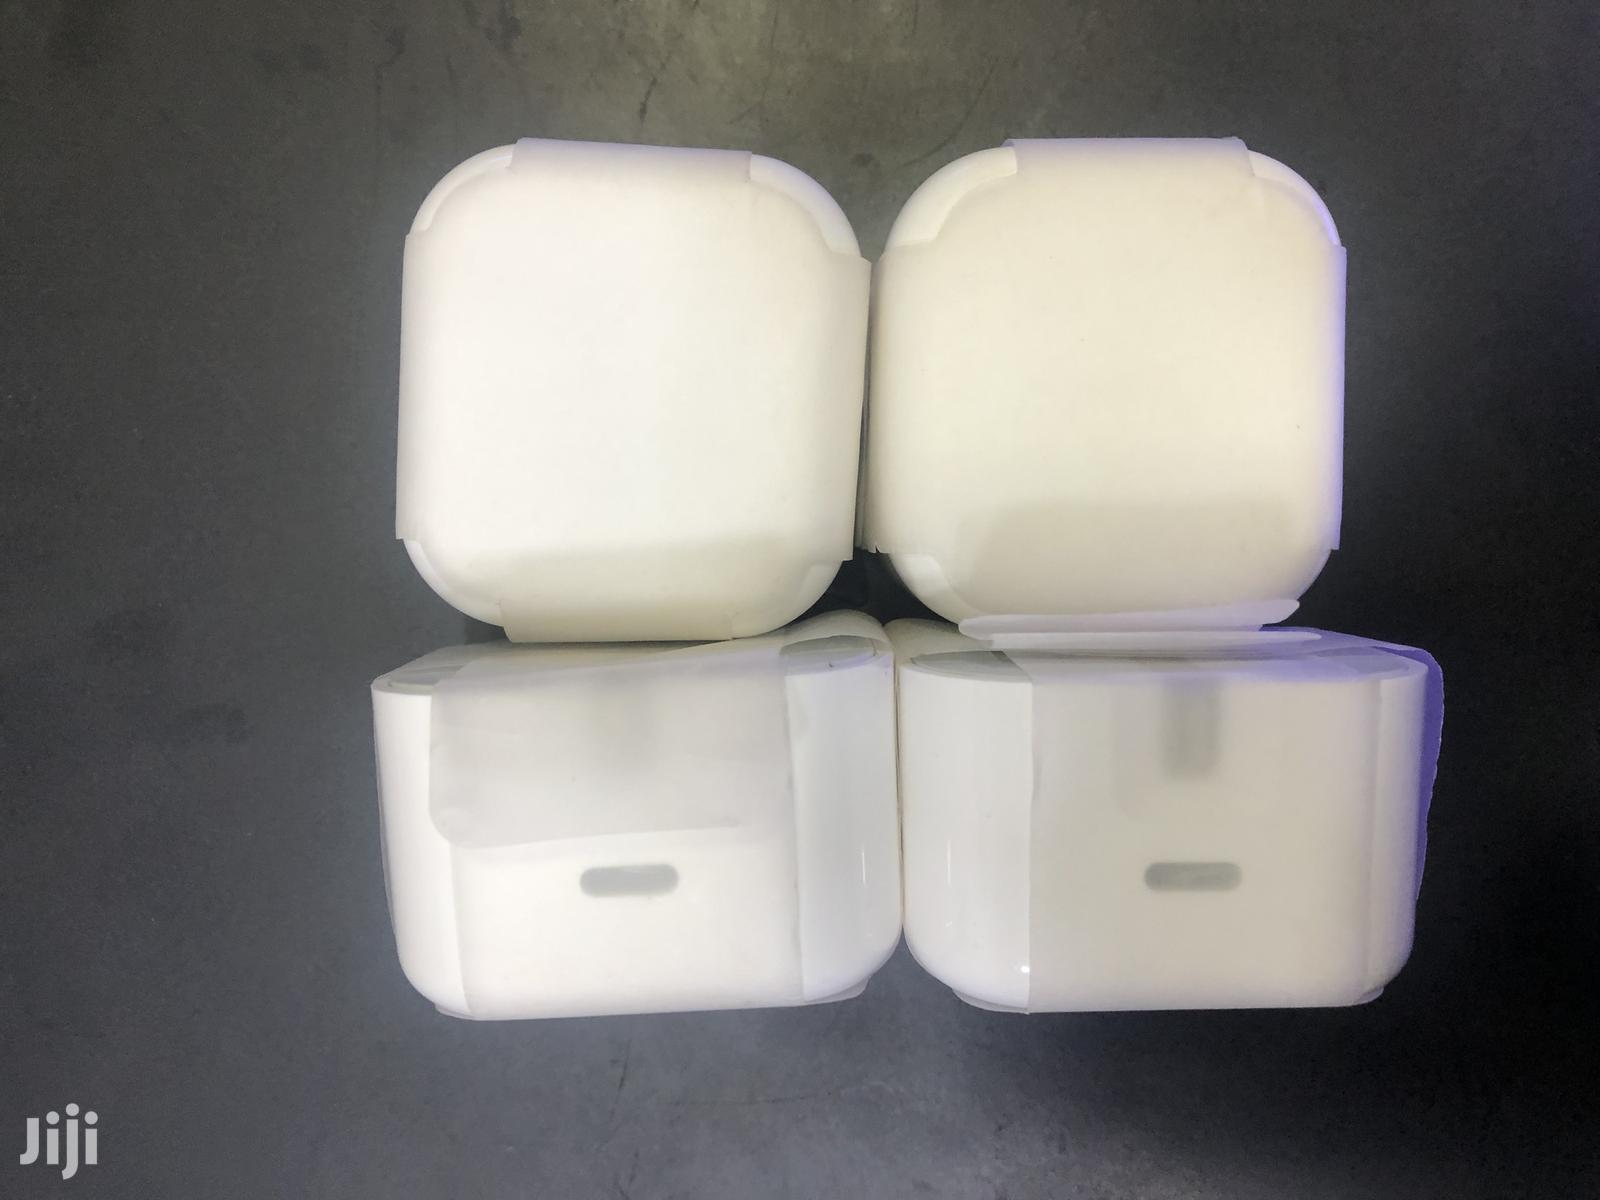 iPhone 11,11 Pro & 11 Pro Max ORIGINAL CHARGERS | Accessories for Mobile Phones & Tablets for sale in Kampala, Central Region, Uganda